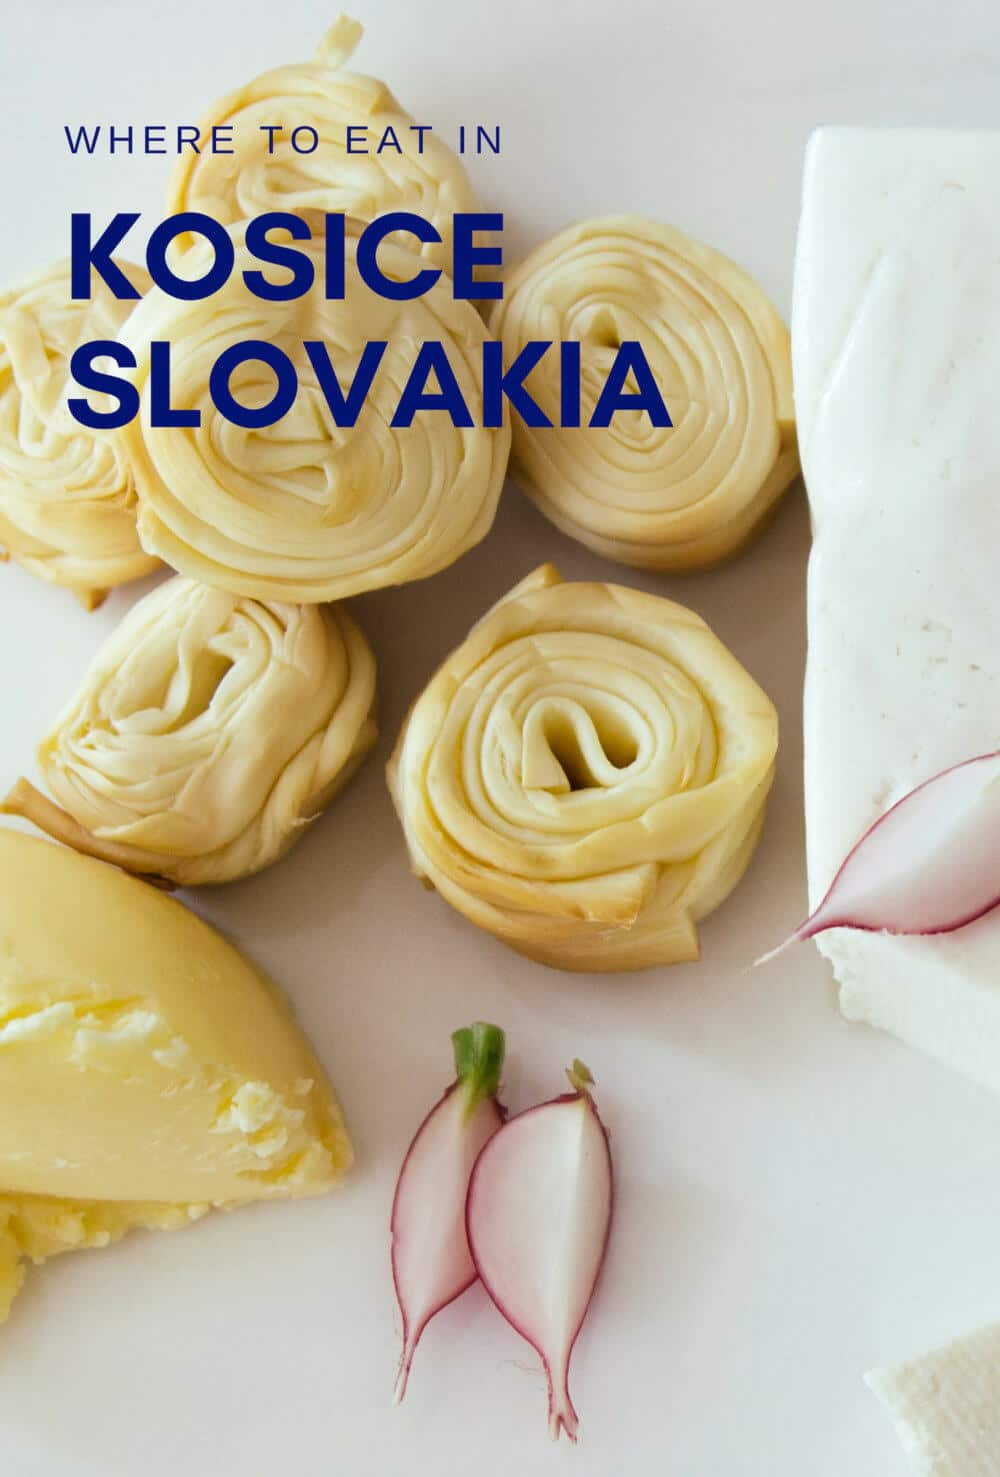 Where to Eat in Kosice